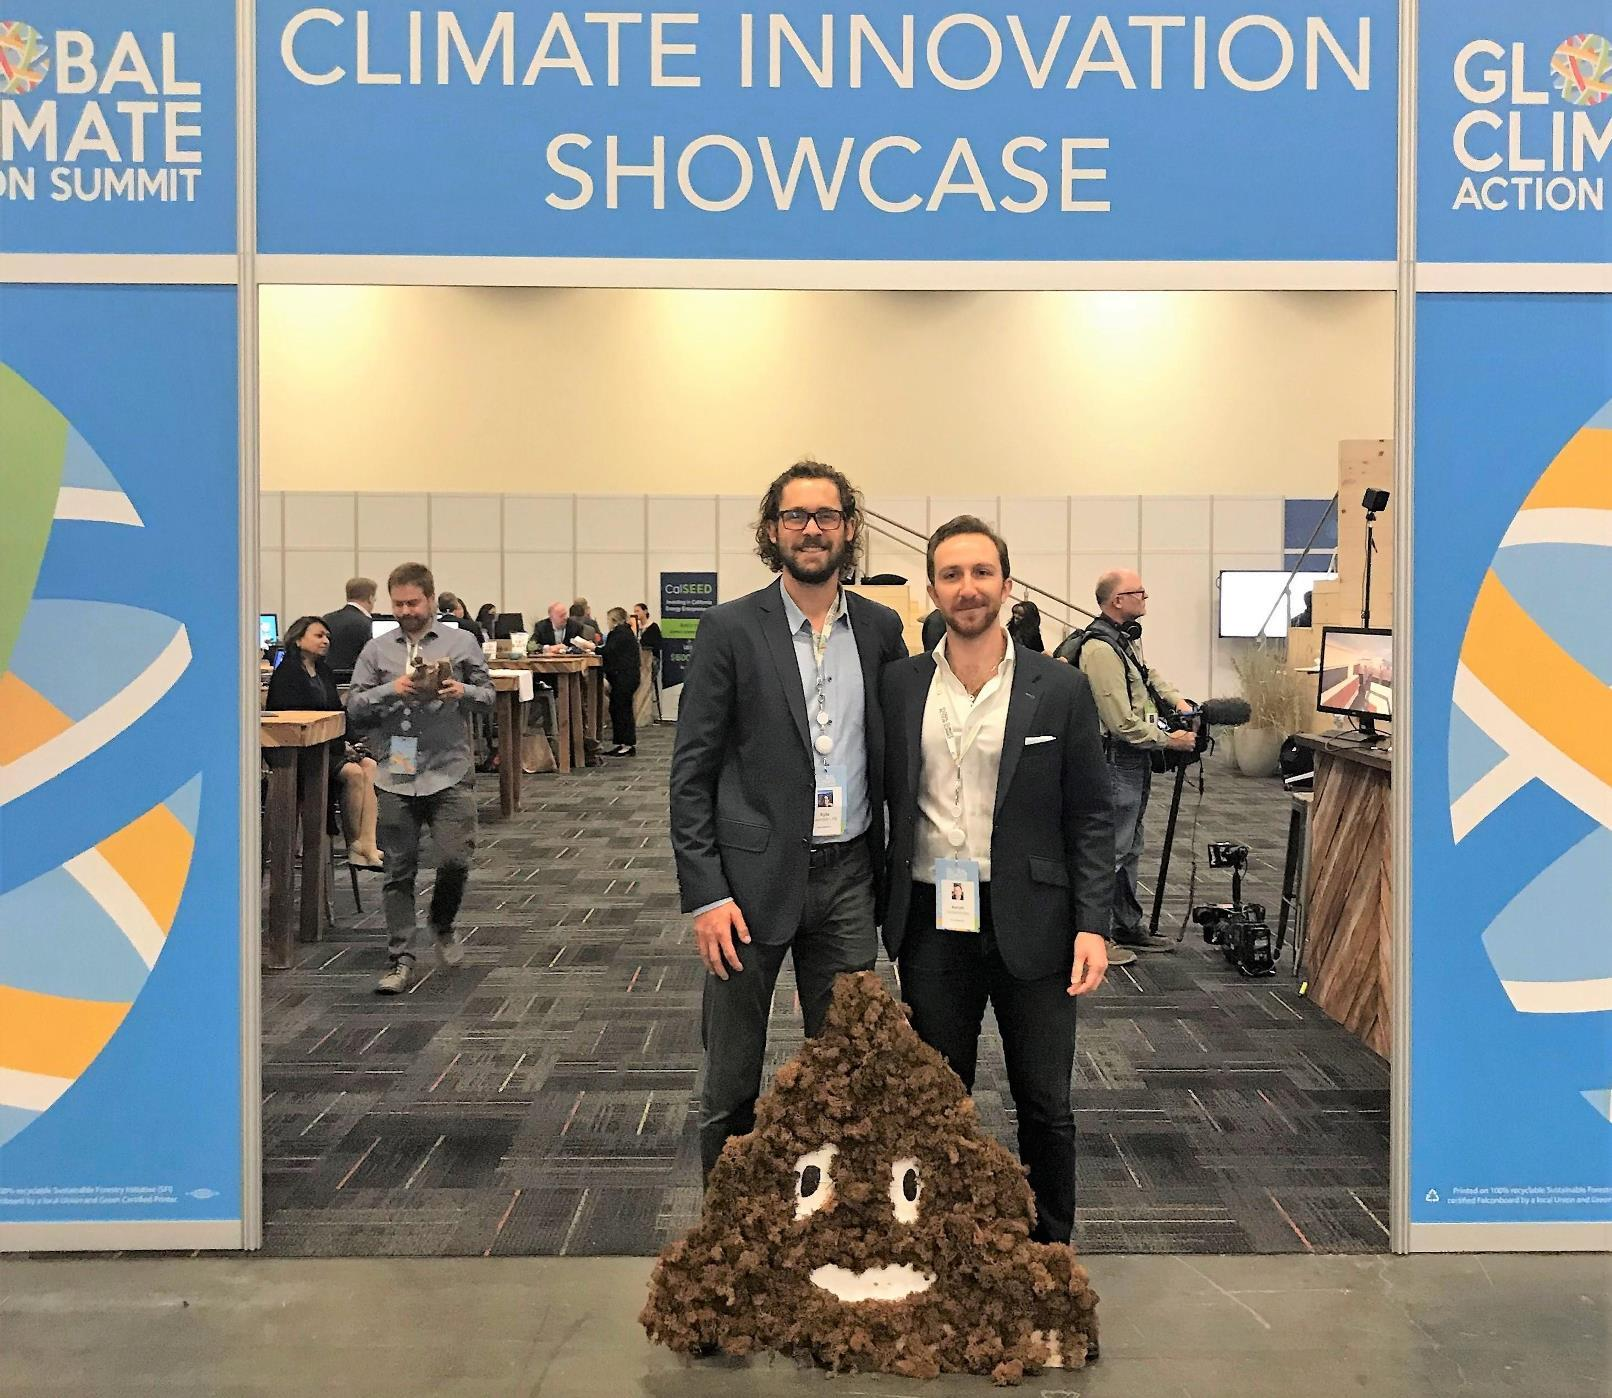 Le PDG d'Epic CleanTec, Aaron Tartakovsky, à droite, et son directeur technique, Kyle Swenson, au Salon Global Climate Action 2018 à San Francisco